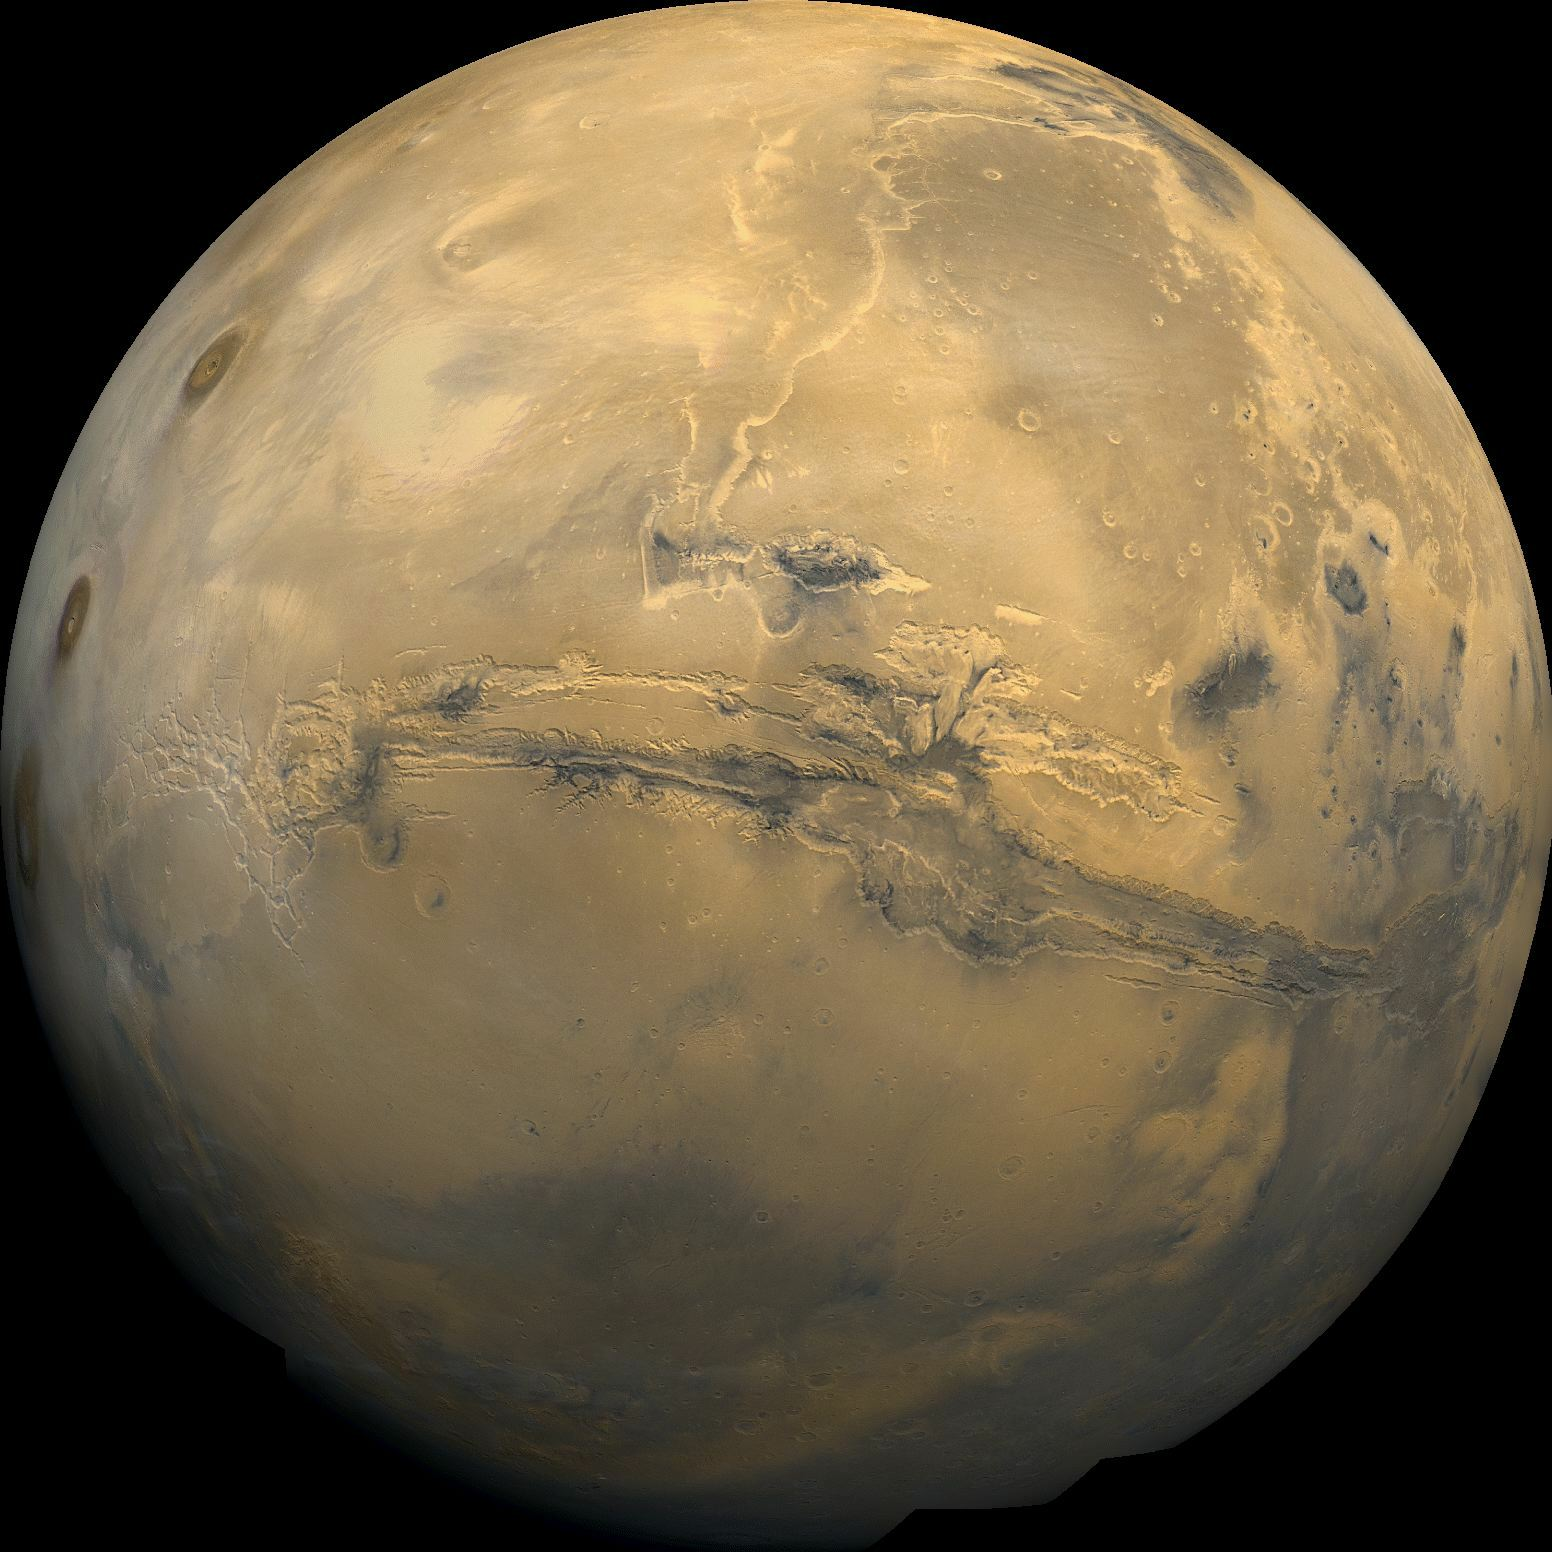 https://upload.wikimedia.org/wikipedia/commons/5/56/Mars_Valles_Marineris.jpeg